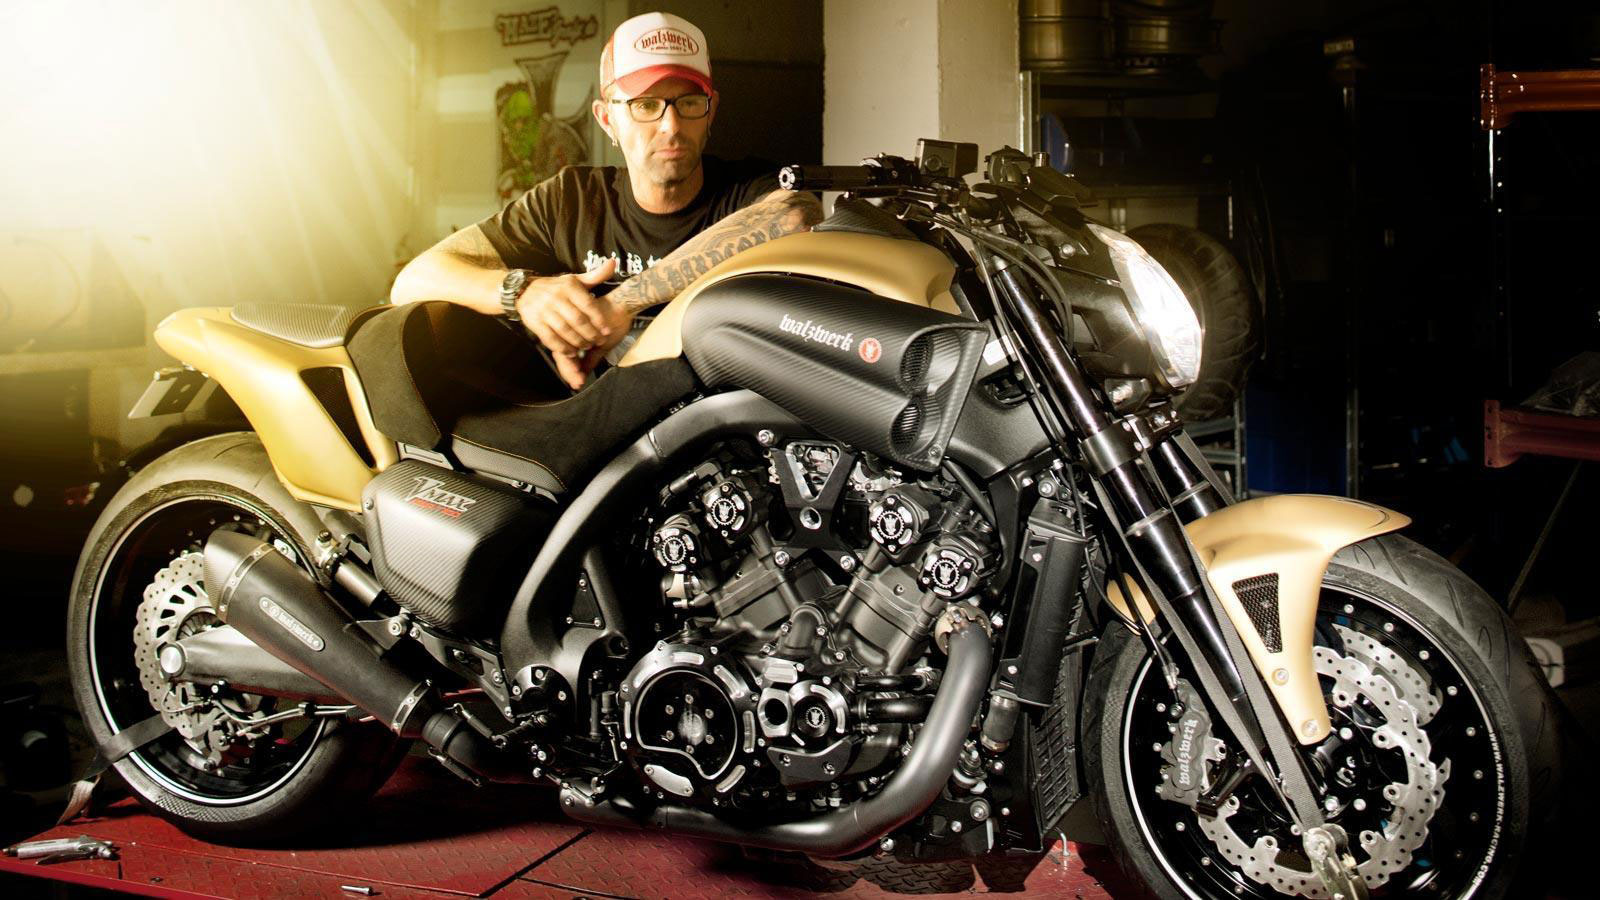 Yamaha VMAX Hyper Modified Marcus Walz 2013 images #92098